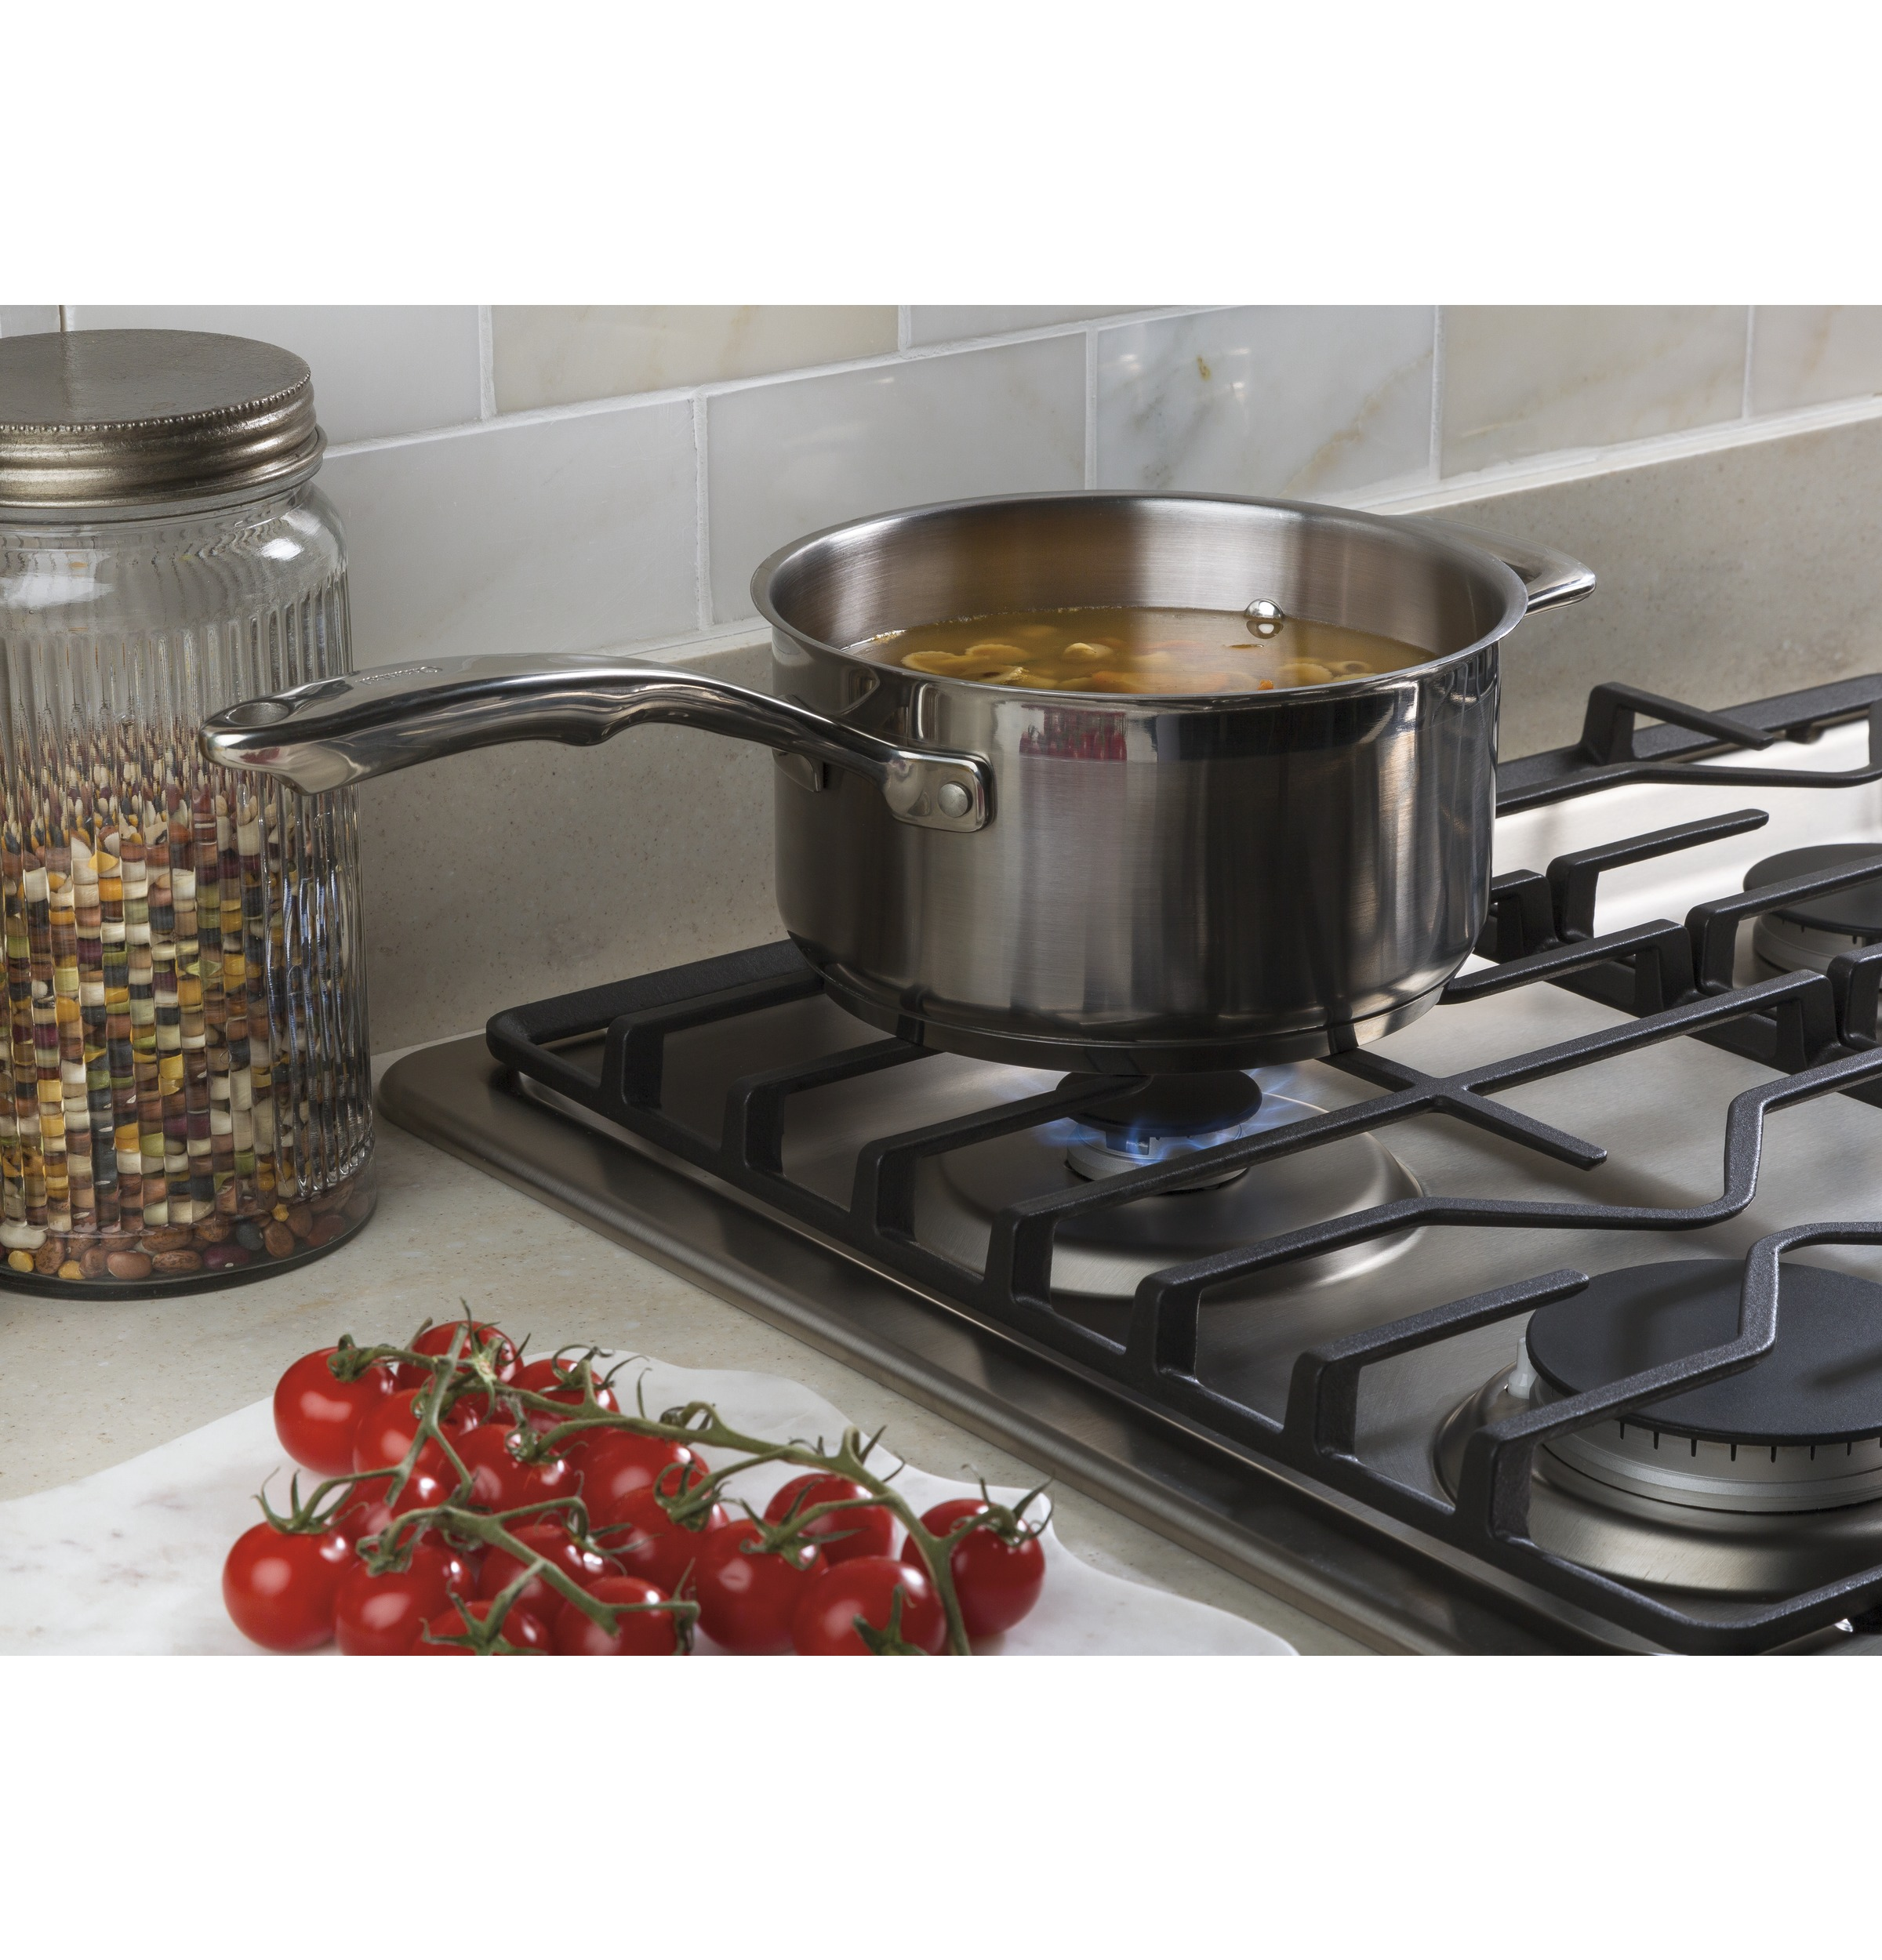 "Model: JGP3030SLSS | GE GE® 30"" Built-In Gas Cooktop with Dishwasher-Safe Grates"